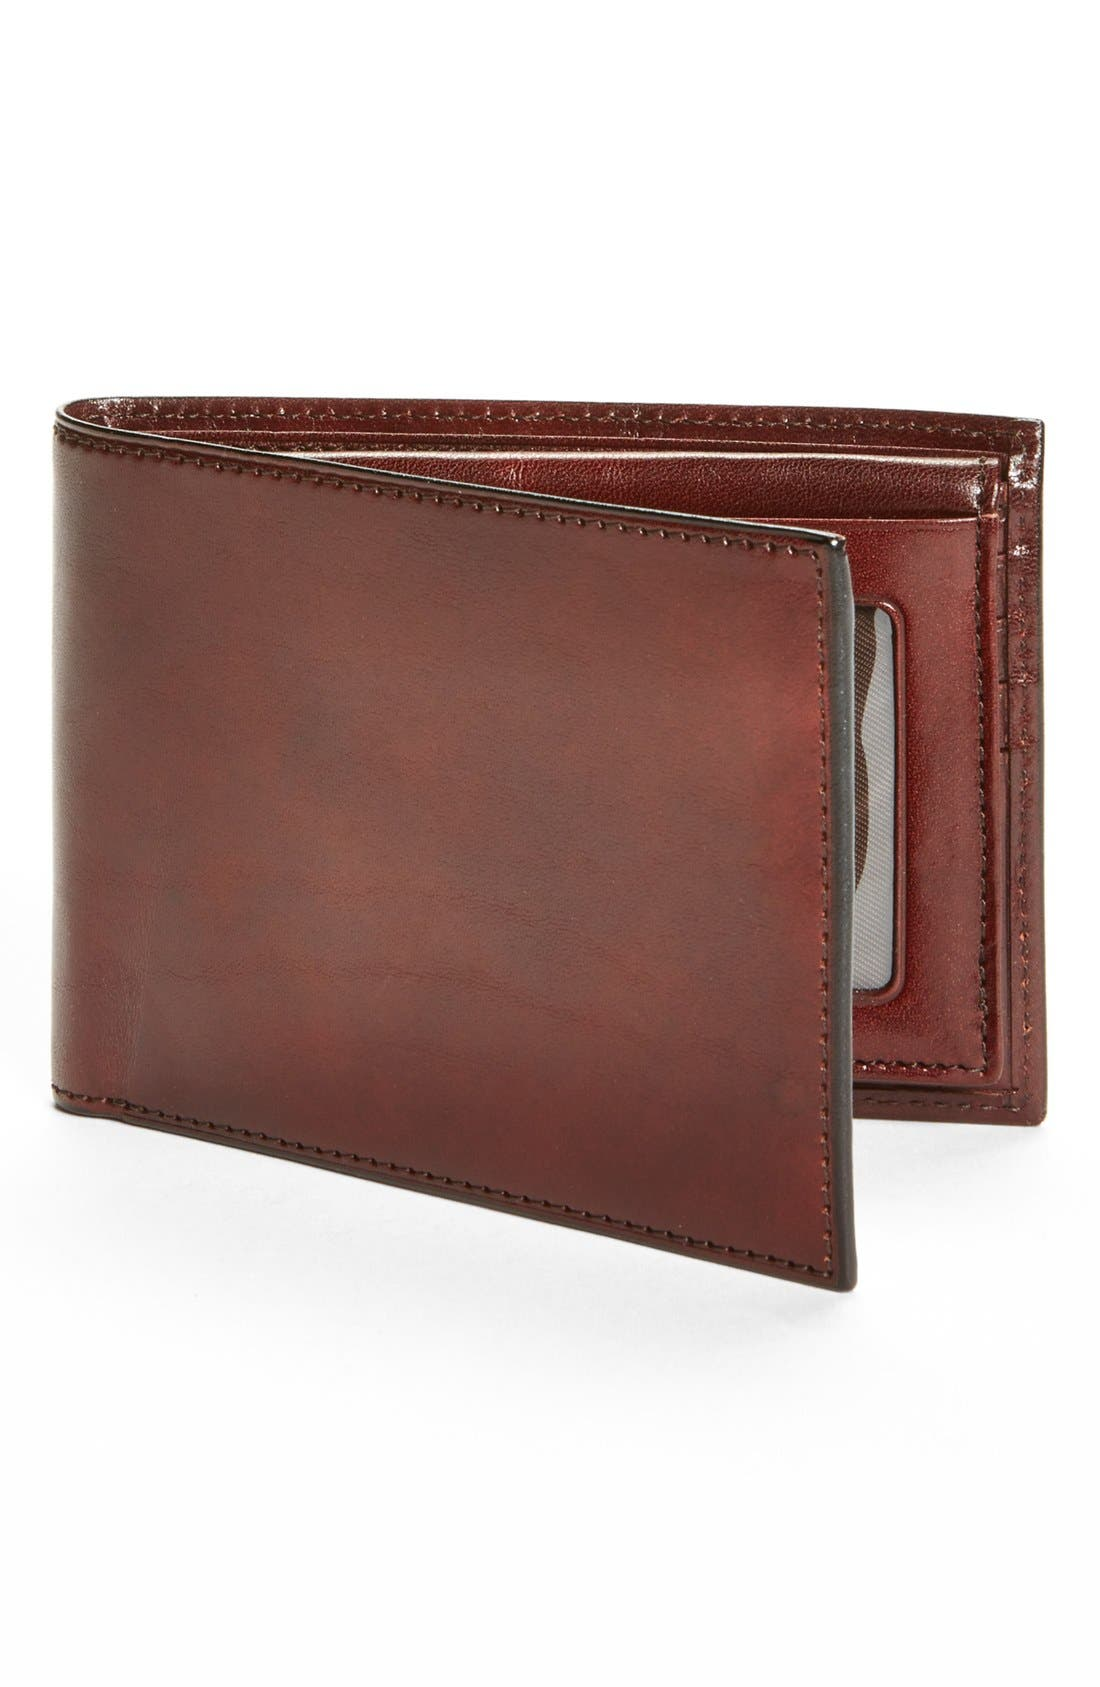 ID Passcase Wallet,                         Main,                         color, BROWN